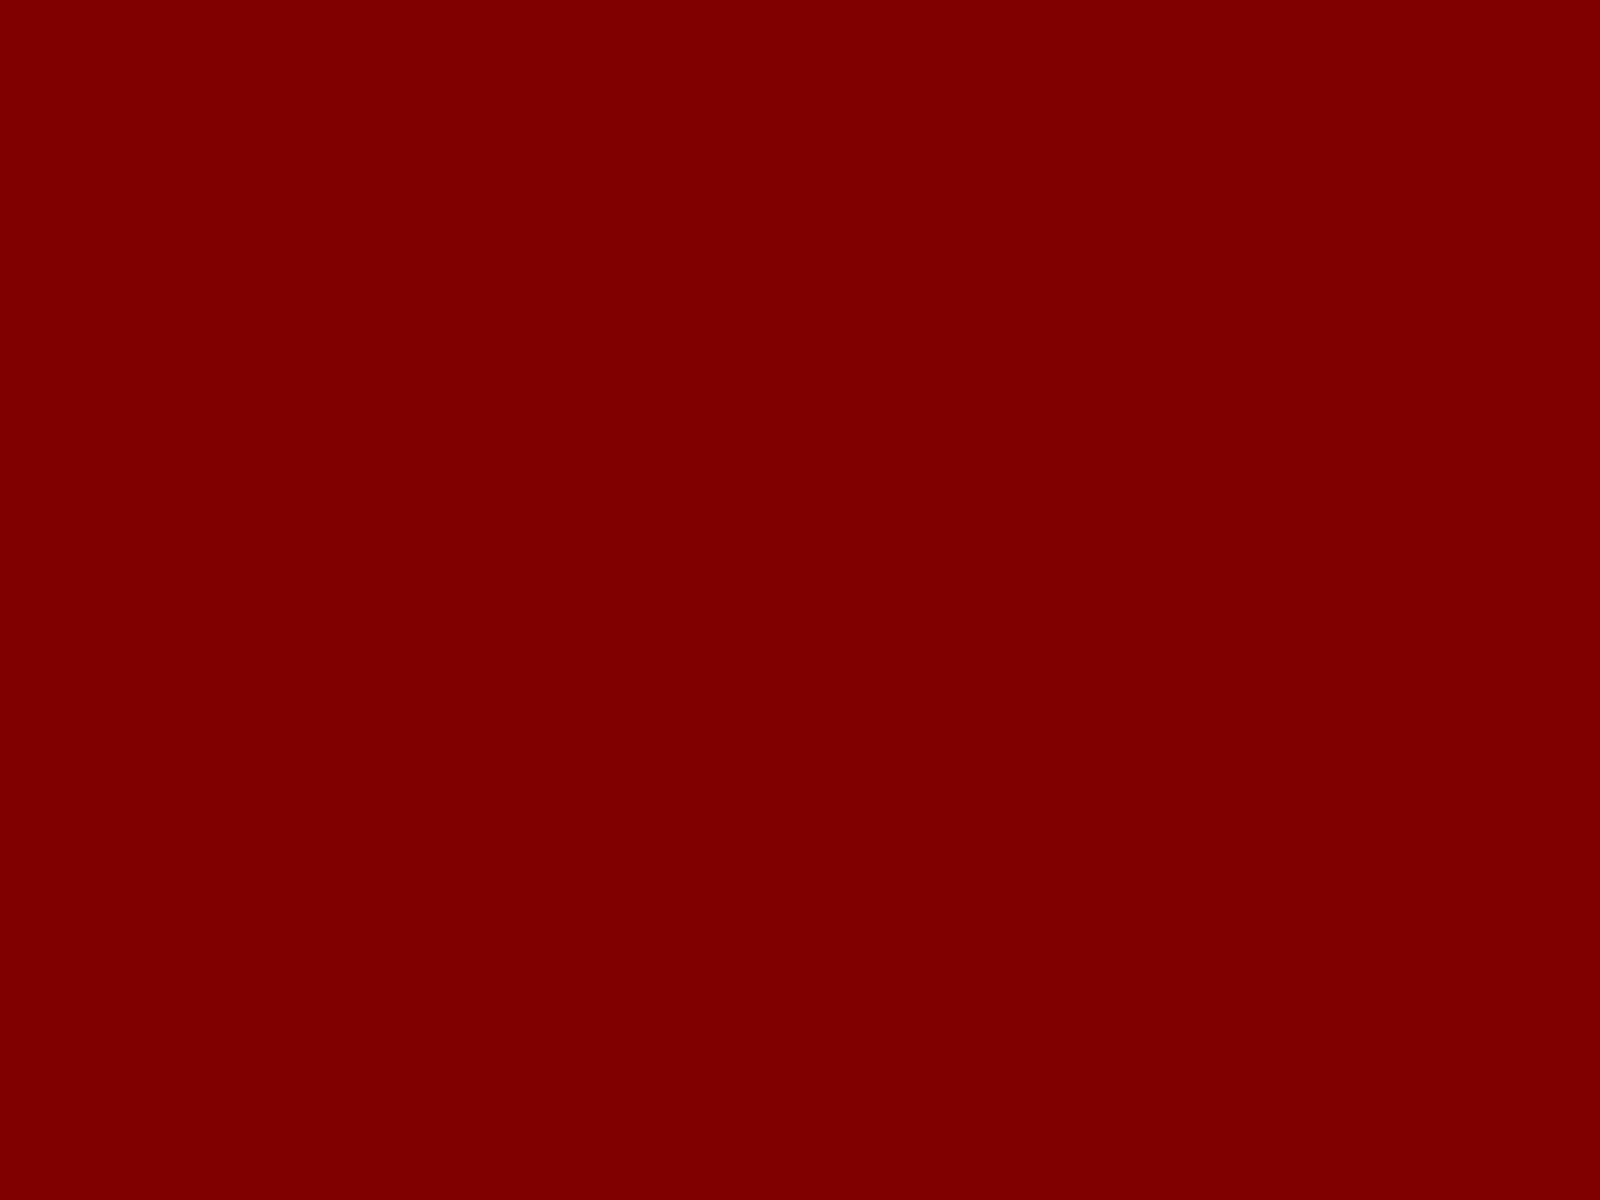 1600x1200 Maroon Web Solid Color Background